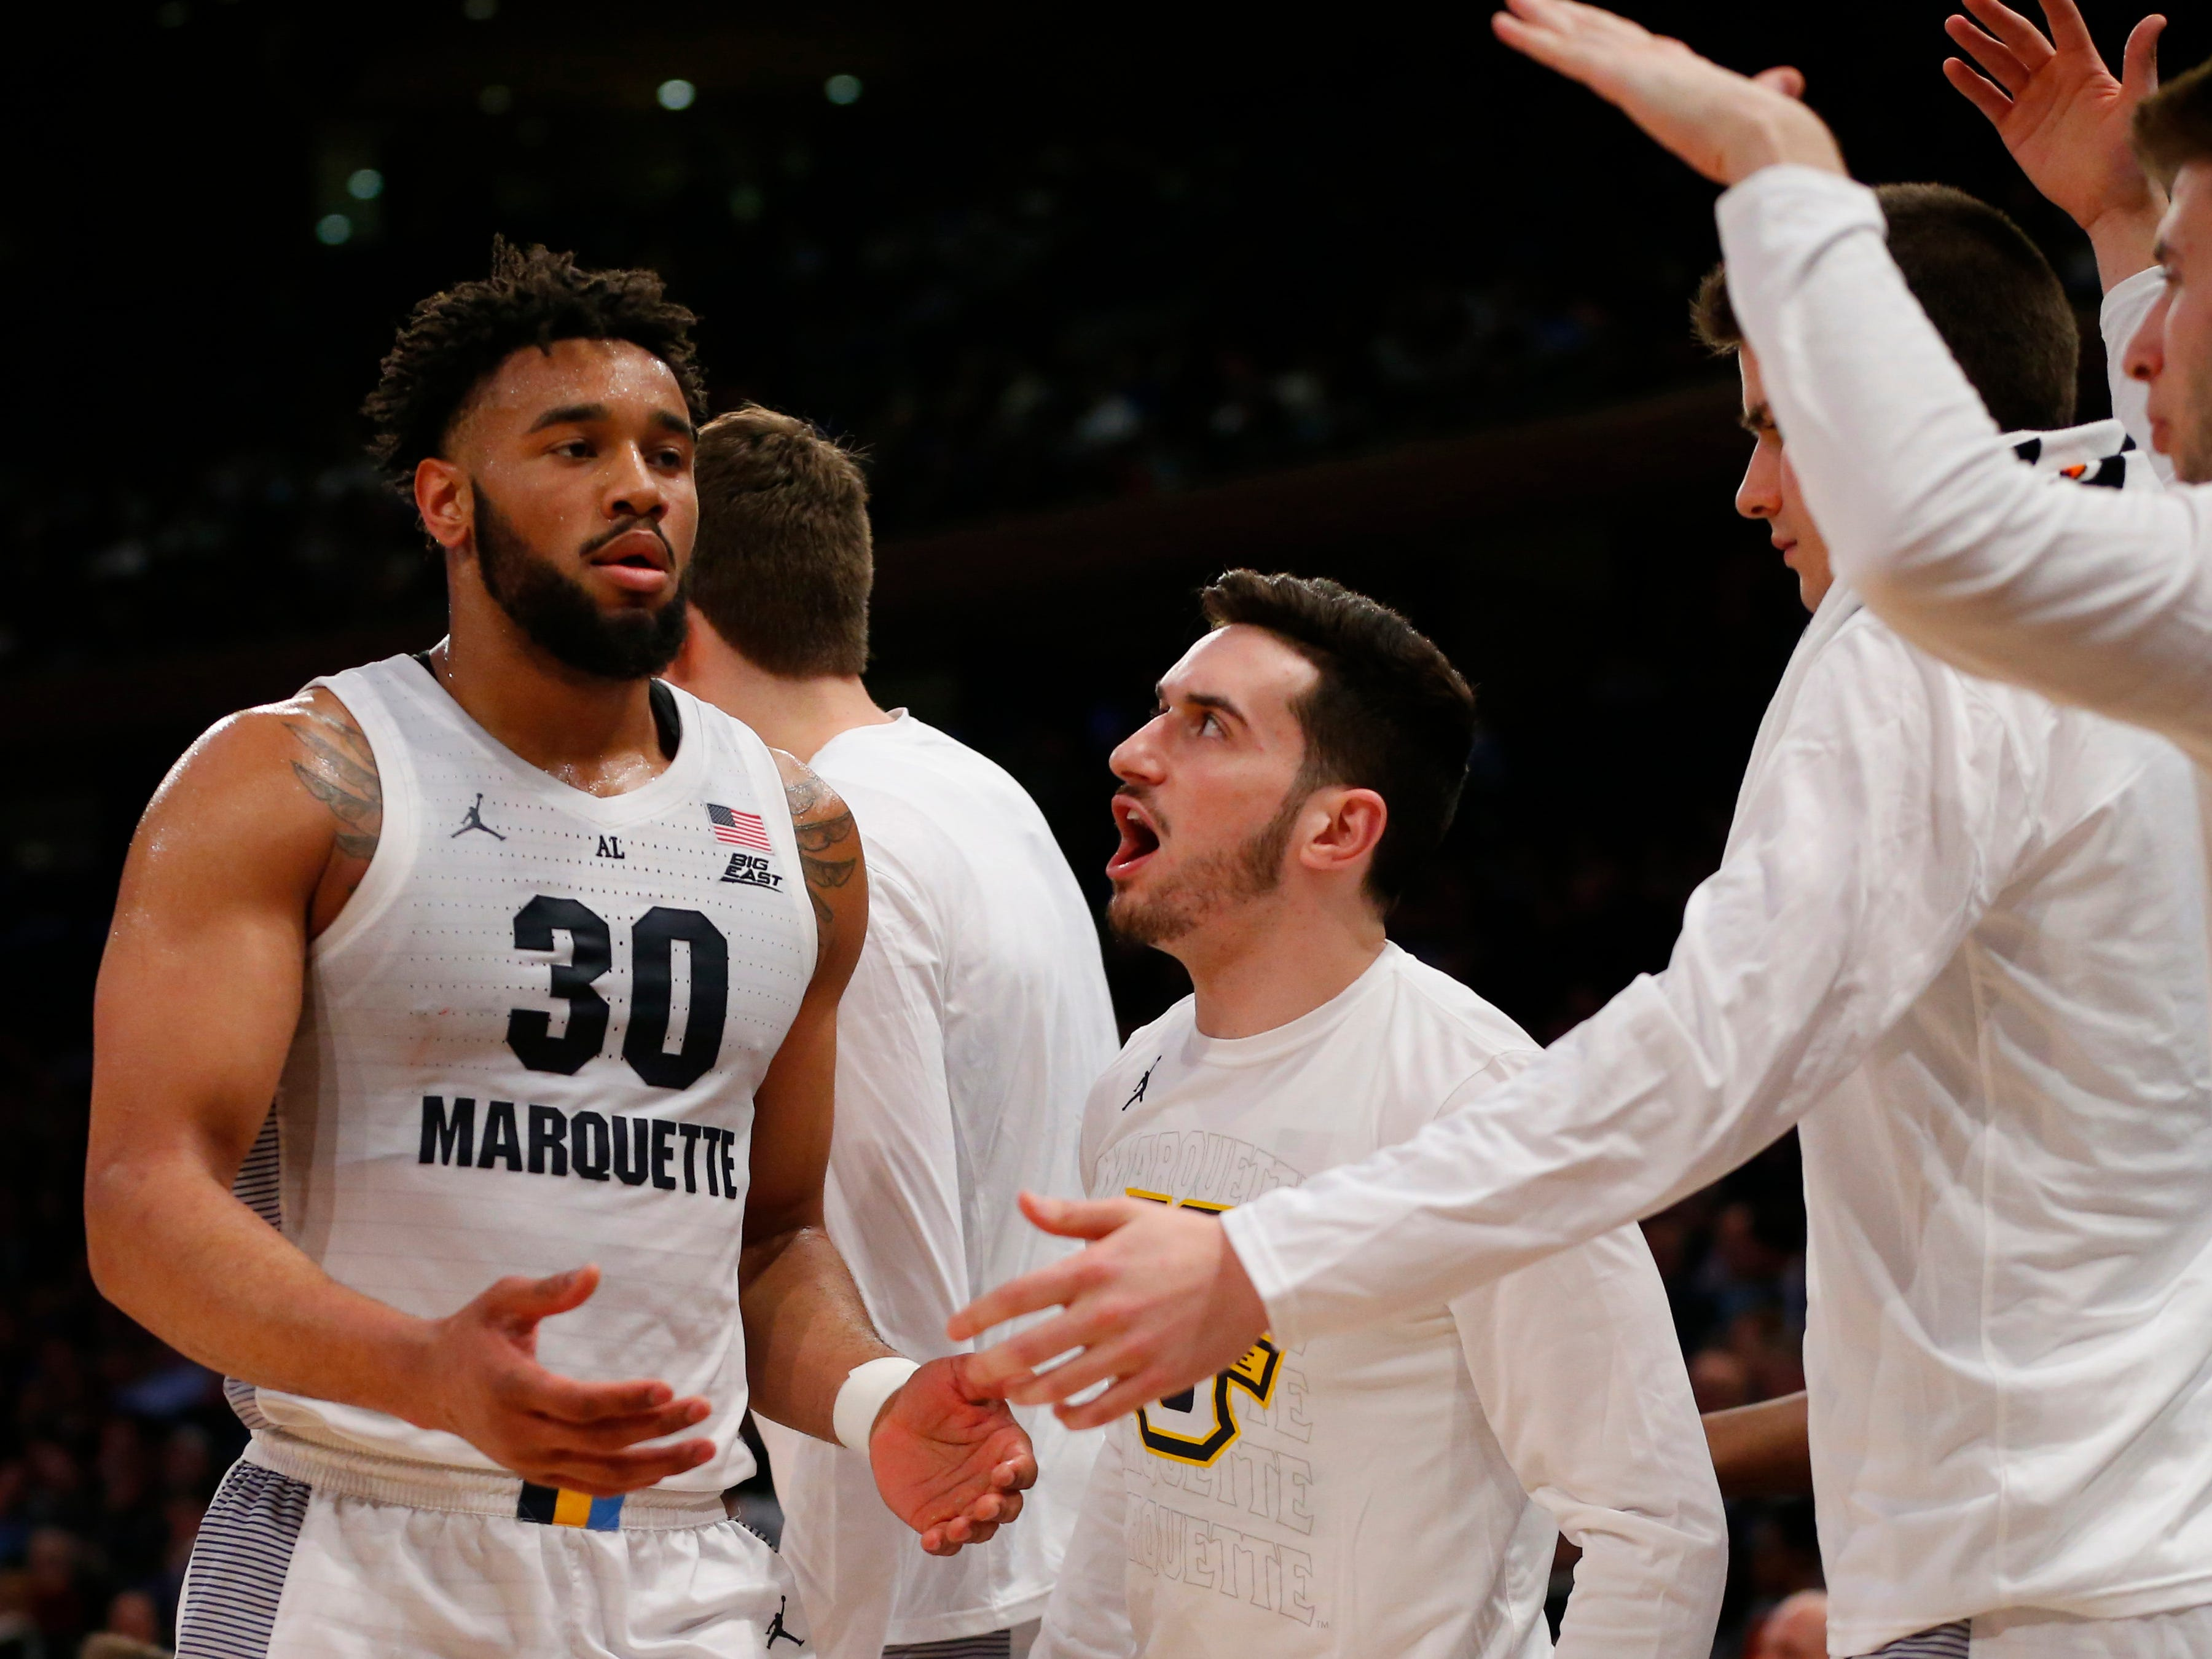 Marquette teammates meet Ed Morrow at the bench in the second half.